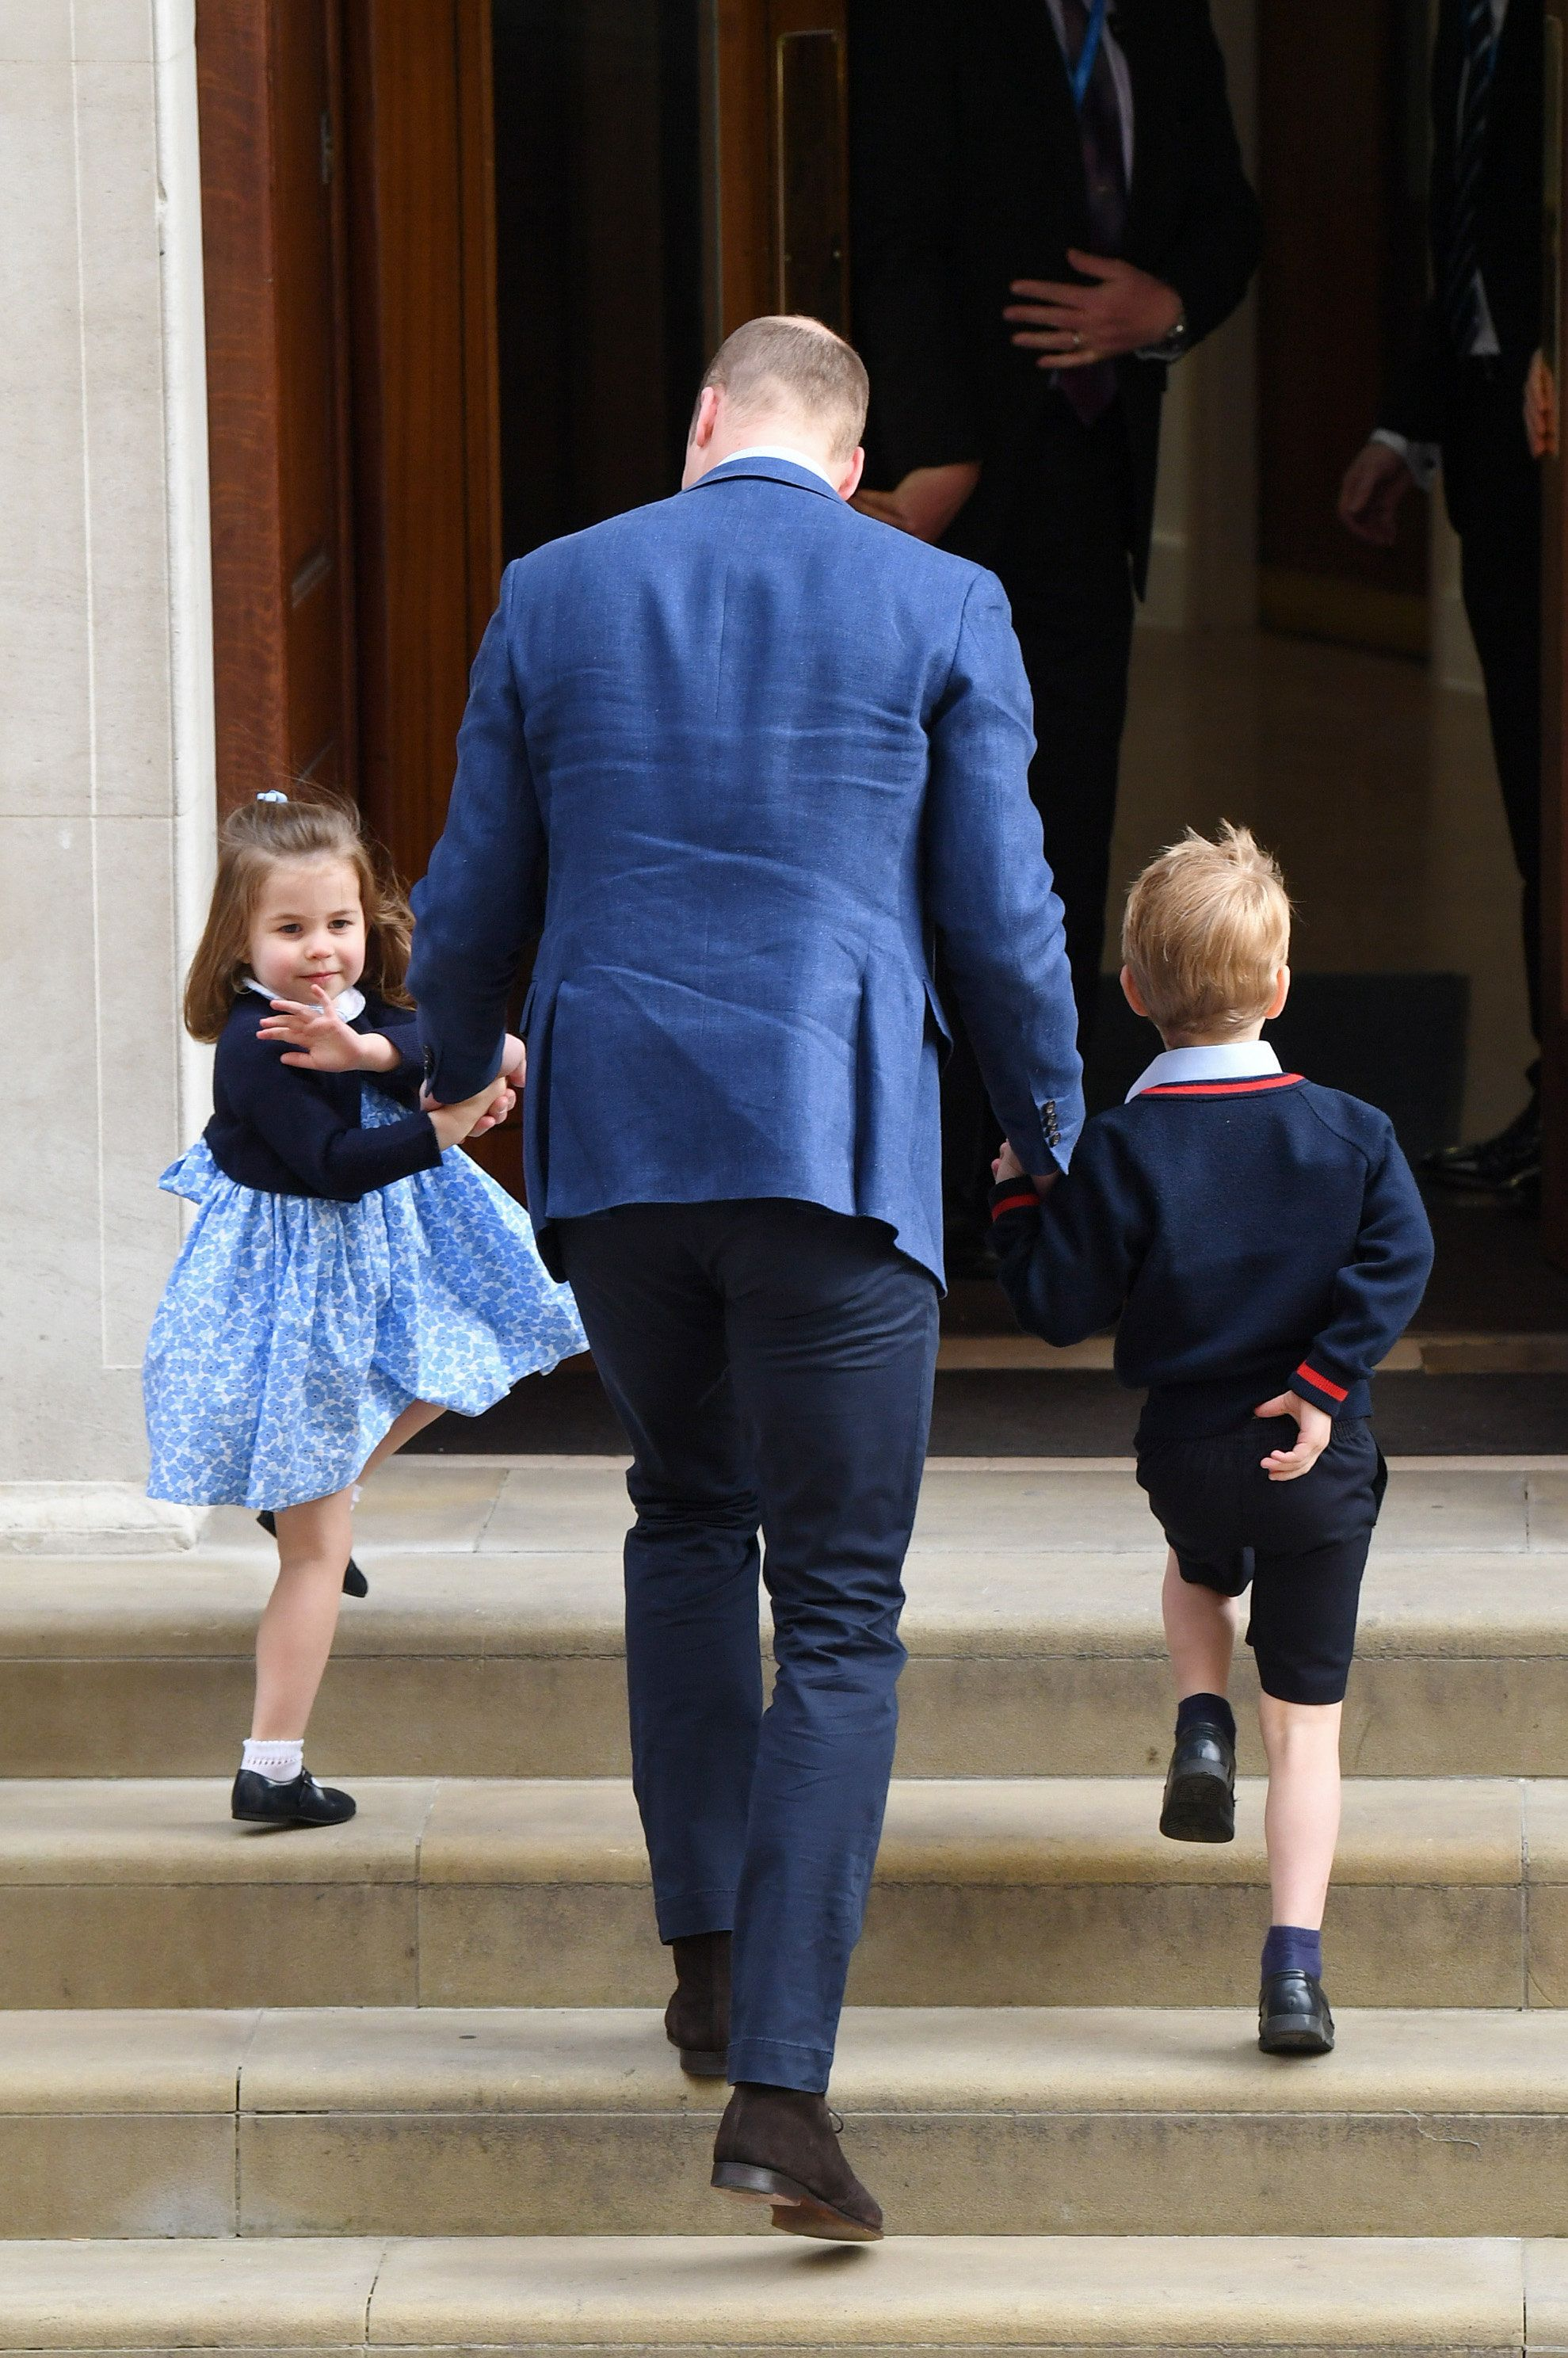 LONDON, ENGLAND - APRIL 23:  Prince William, Duke of Cambridge arrives with Prince George and Princess Charlotte at the Lindo Wing after Catherine, Duchess of Cambridge gave birth to their son at St Mary's Hospital on April 23, 2018 in London, England. The Duchess safely delivered a boy at 11:01 am, weighing 8lbs 7oz, who will be fifth in line to the throne..  (Photo by Samir Hussein/WireImage)